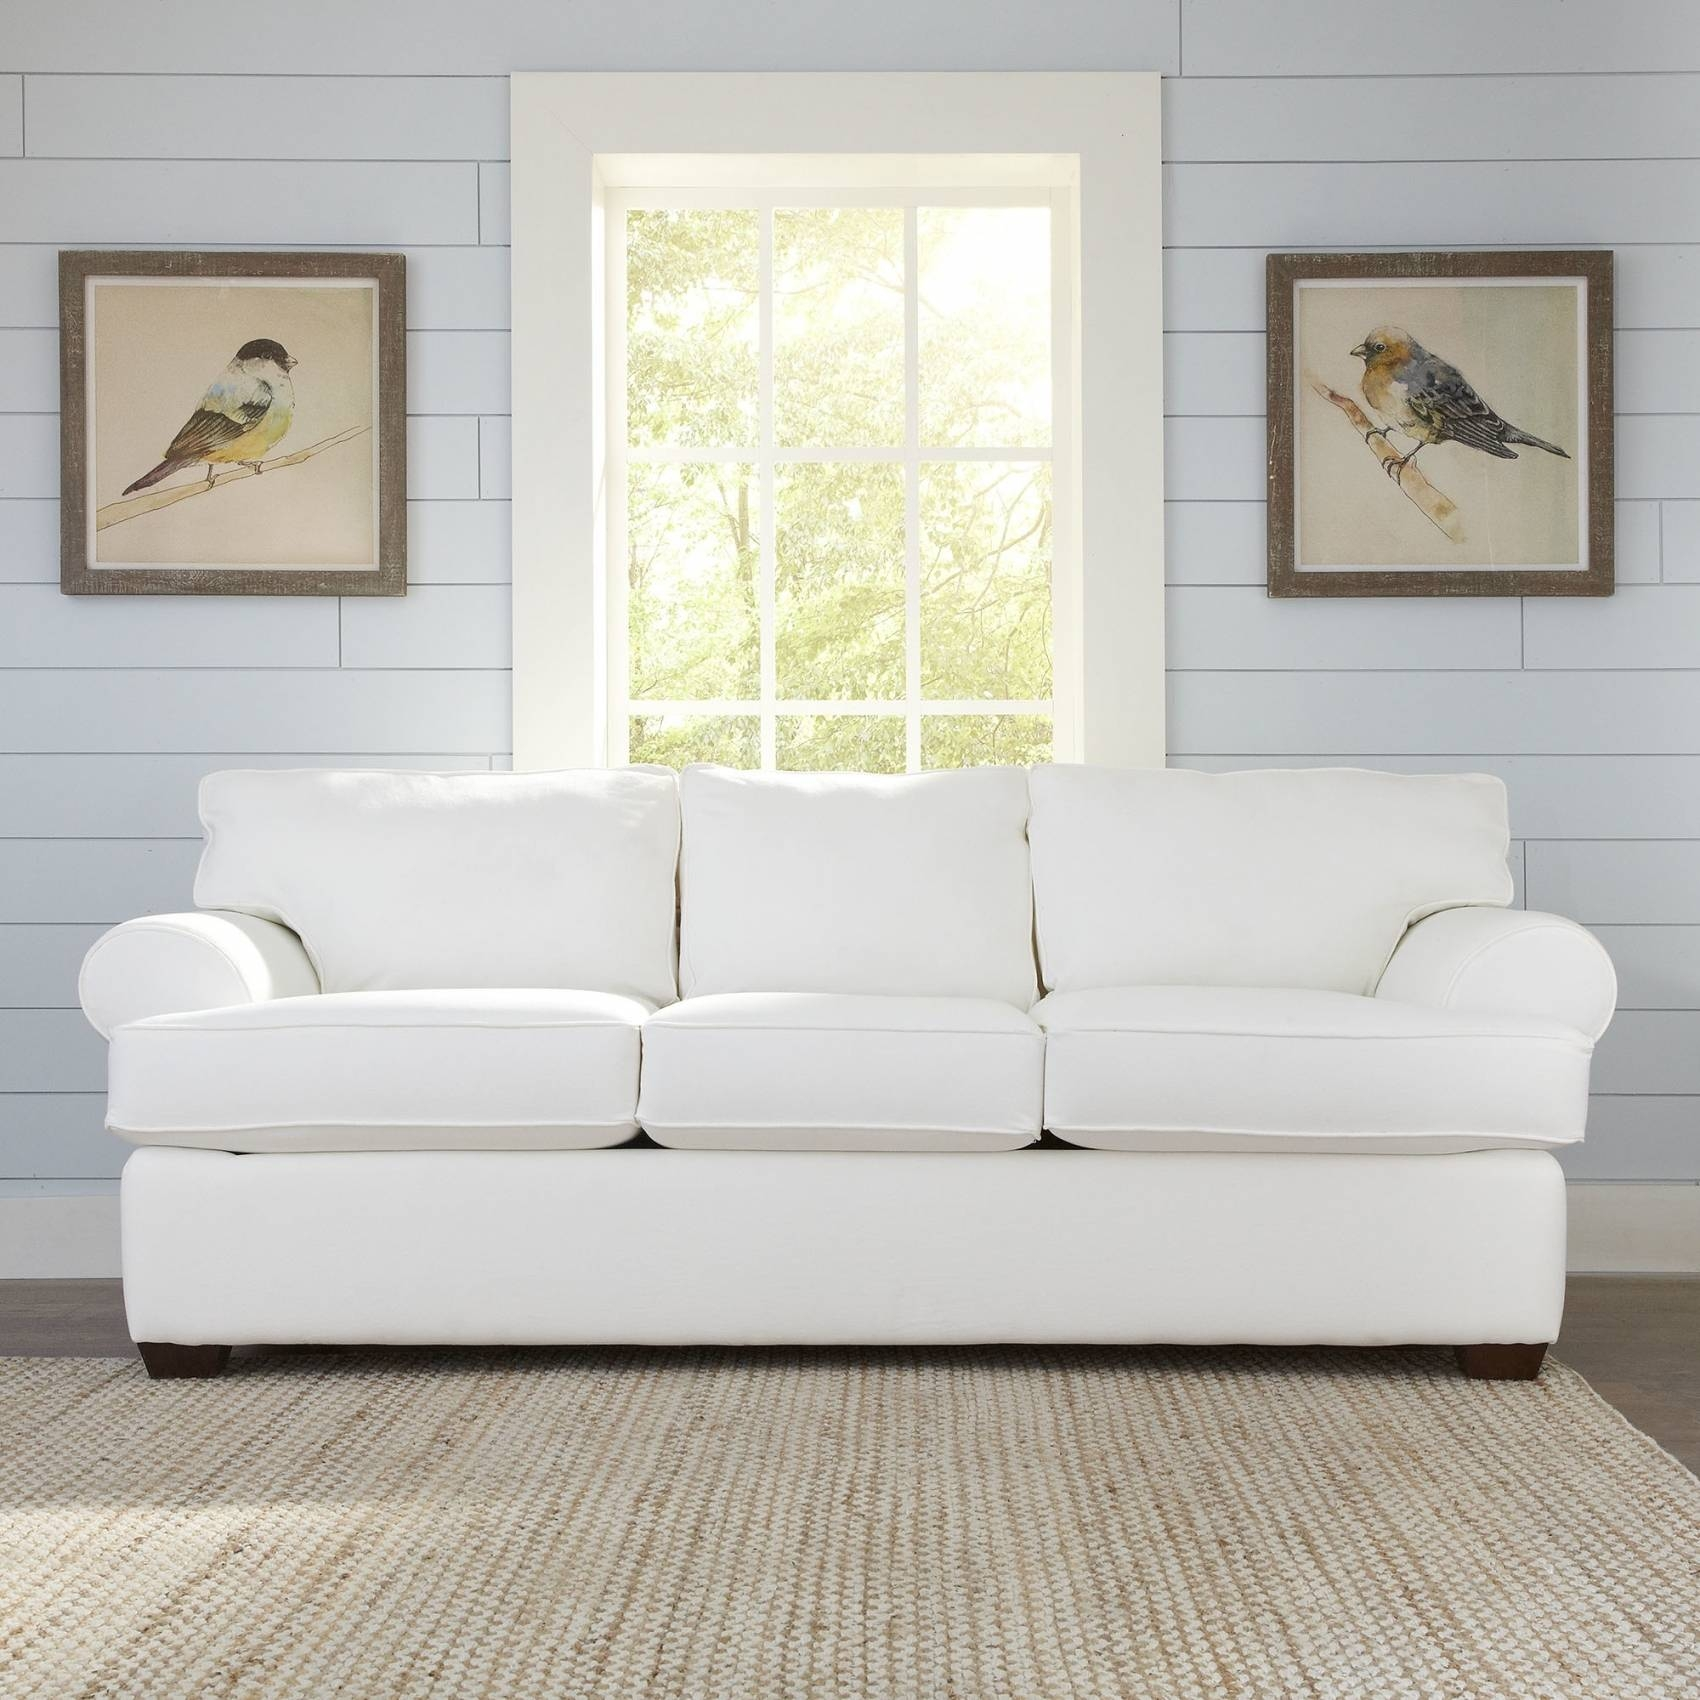 Luxury Carlyle Sofa Beds - Merciarescue for Carlyle Sofa Beds (Image 3 of 15)